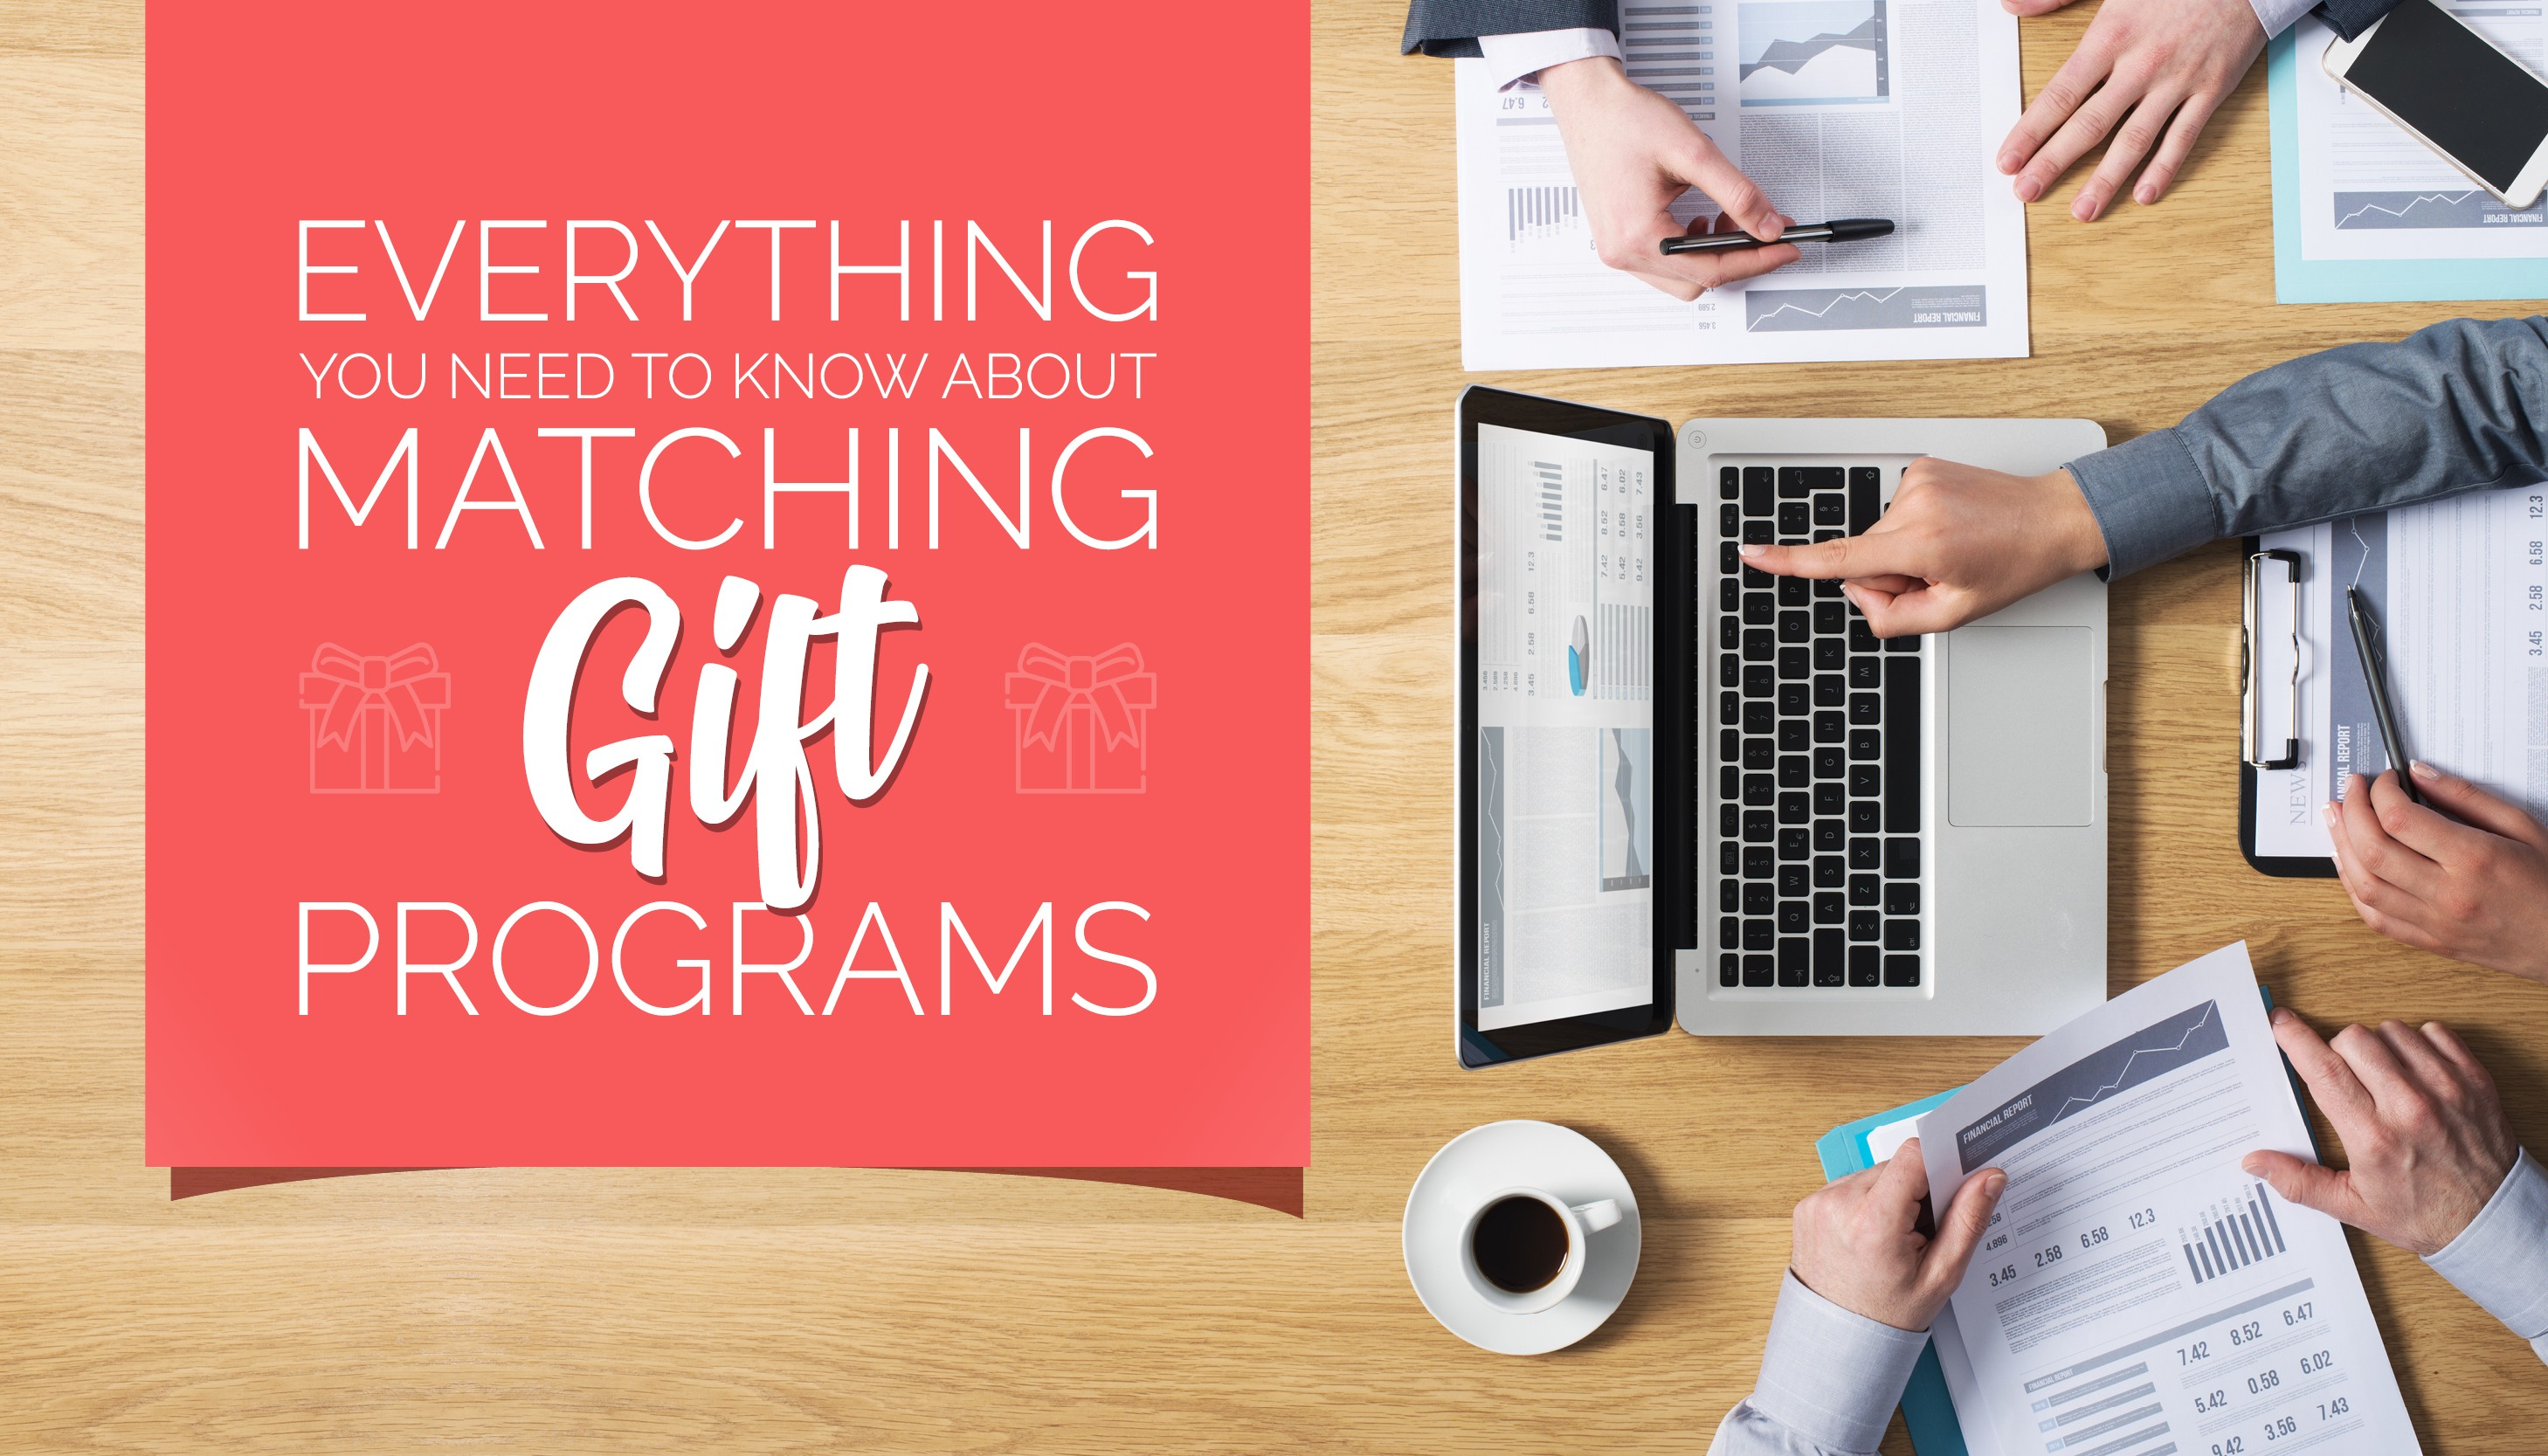 Everything You Need to Know About Matching Gift Programs